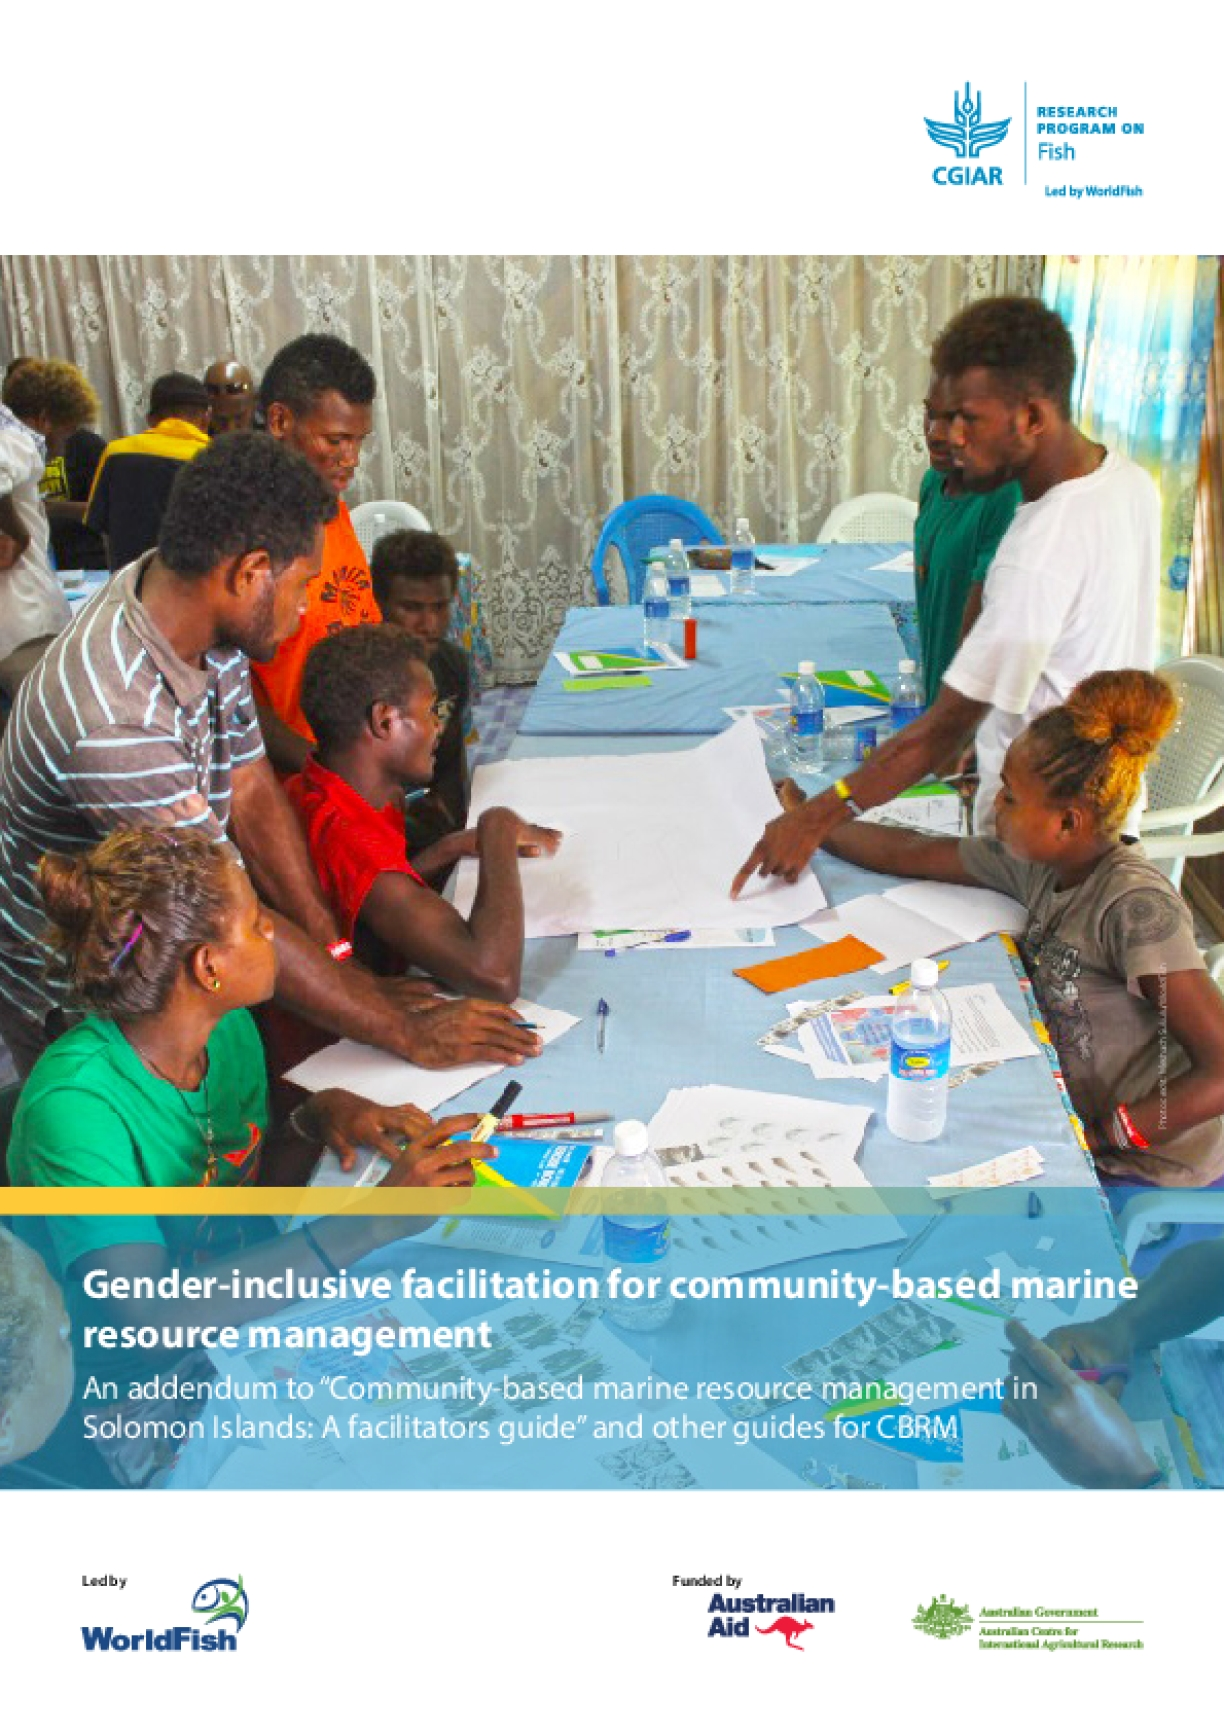 Gender-inclusive facilitation for community-based marine resource management